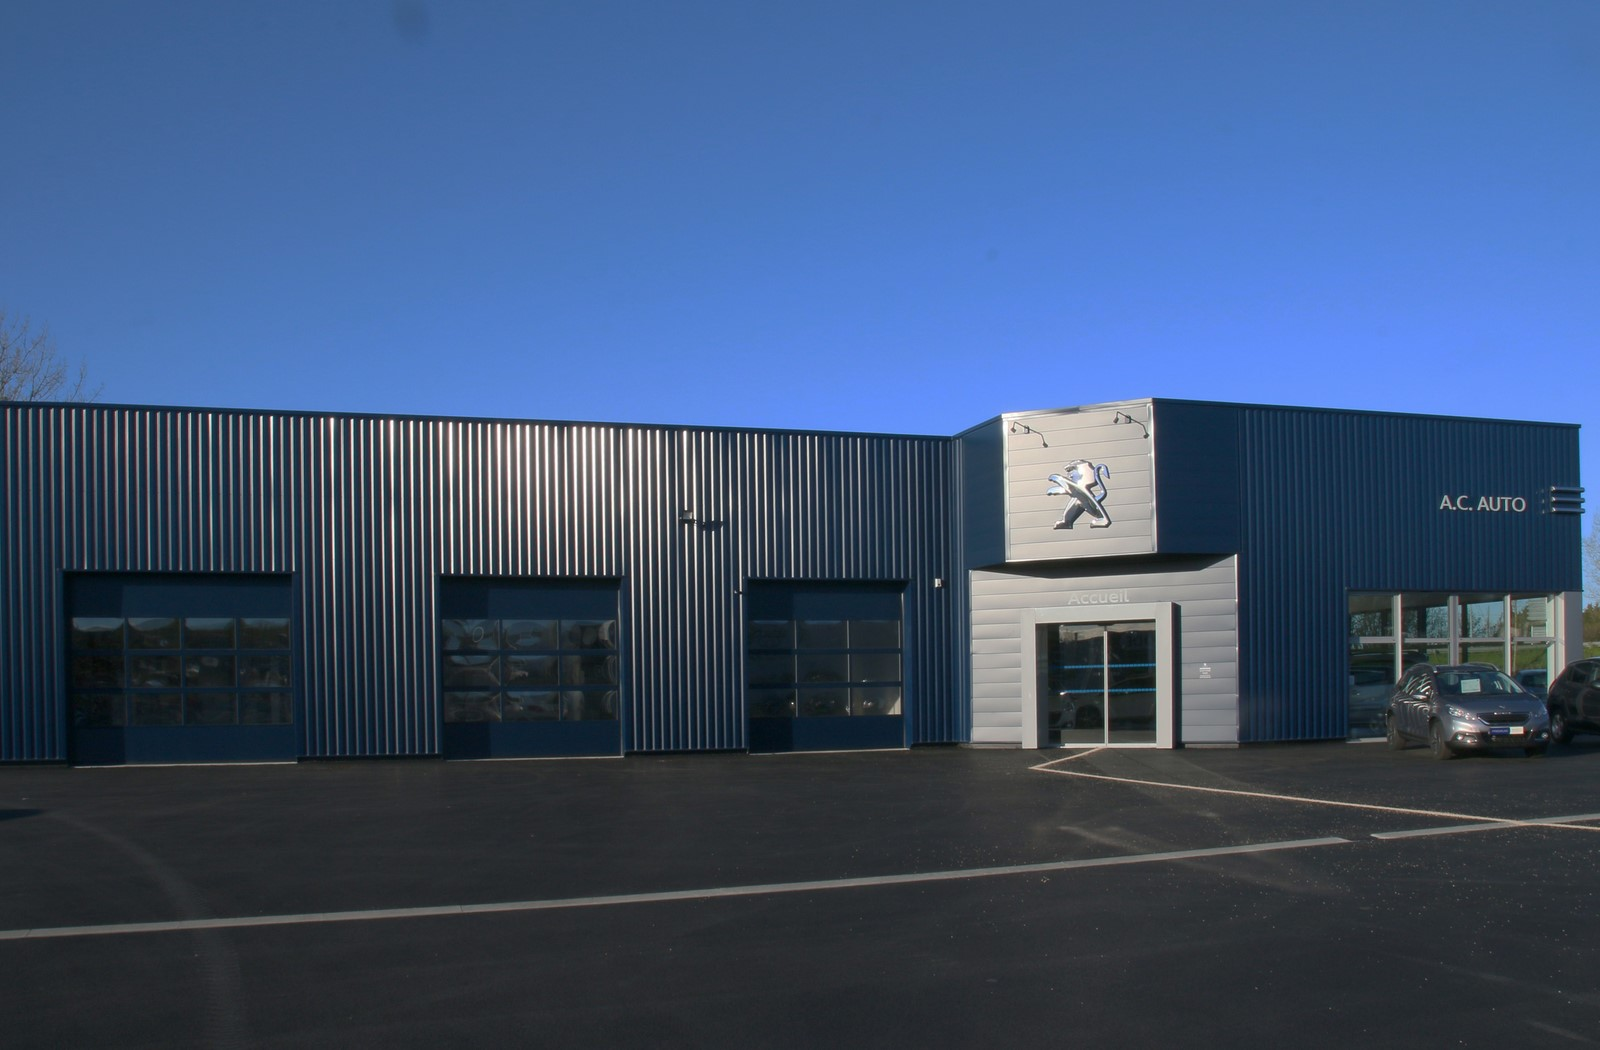 Ouverture garage peugeot la chataigneraie site for Garage peugeot montfort